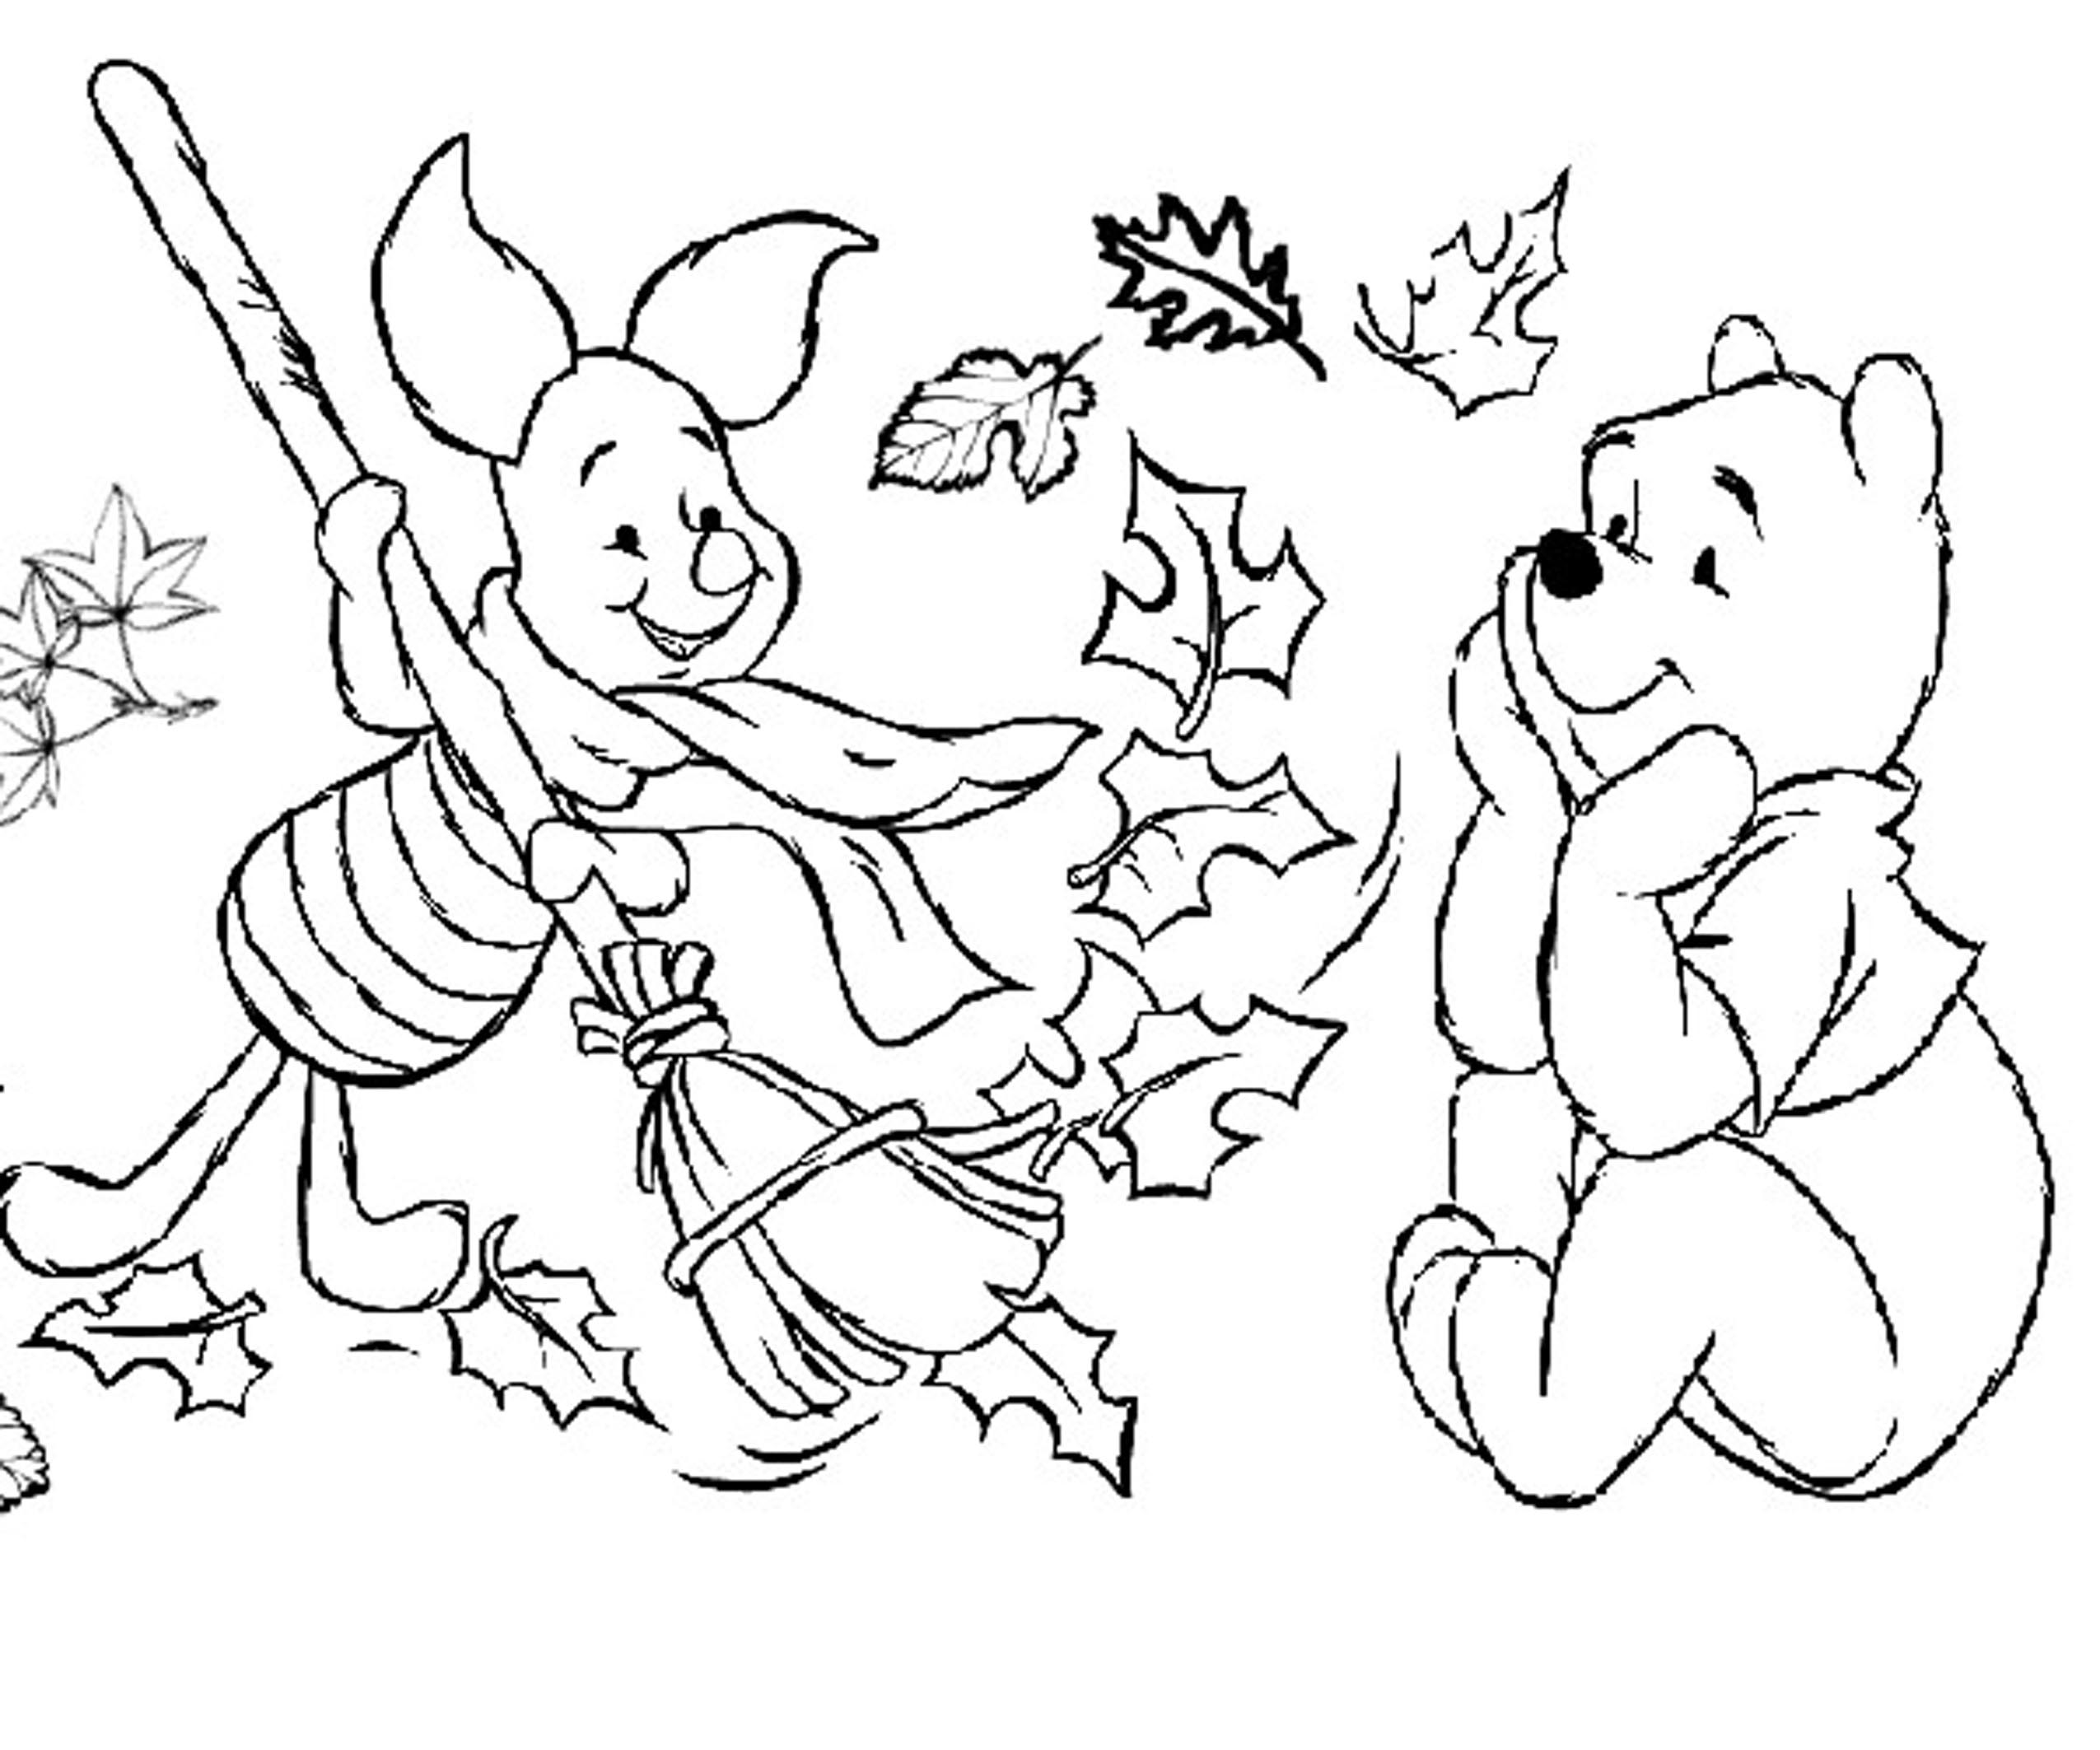 pooh piglet disney fall coloring pages preschoolers - Colouring Sheets For Preschoolers